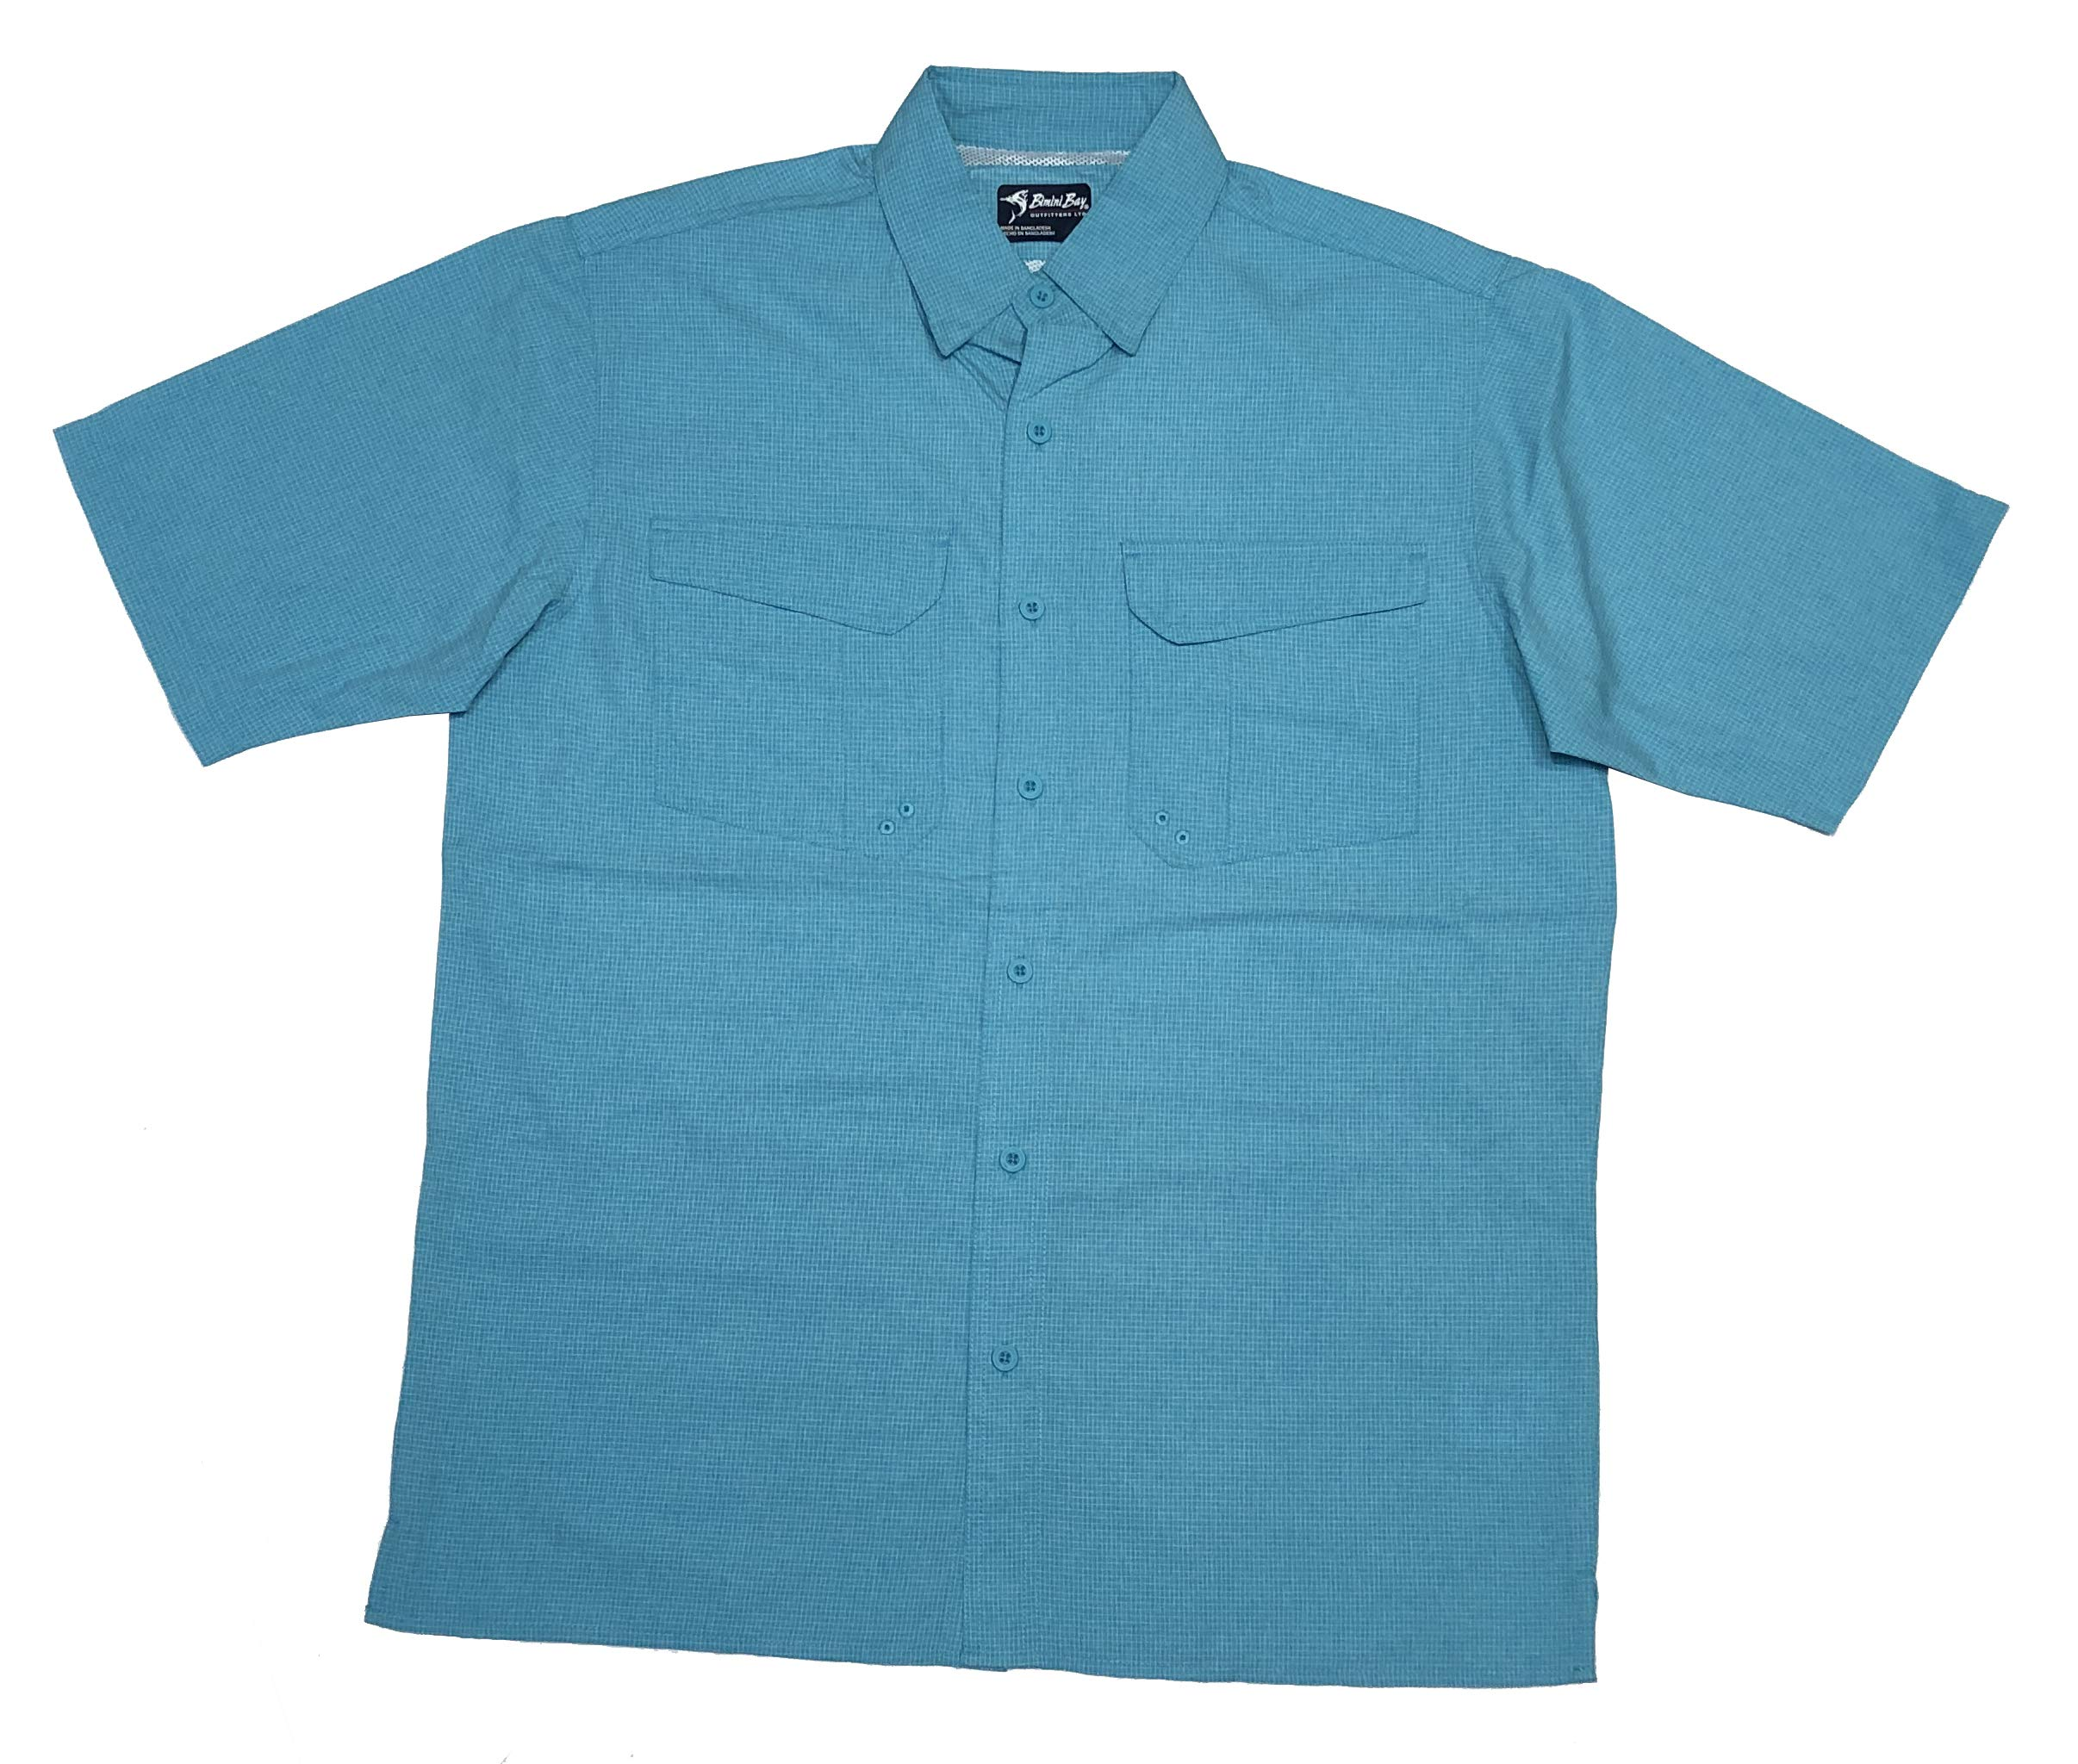 Bimini Bay Outfitters 'The Largo' Short Sleeve Shirt with BloodGuard (Aqua, XX-Large) by Bimini Bay Outfitters